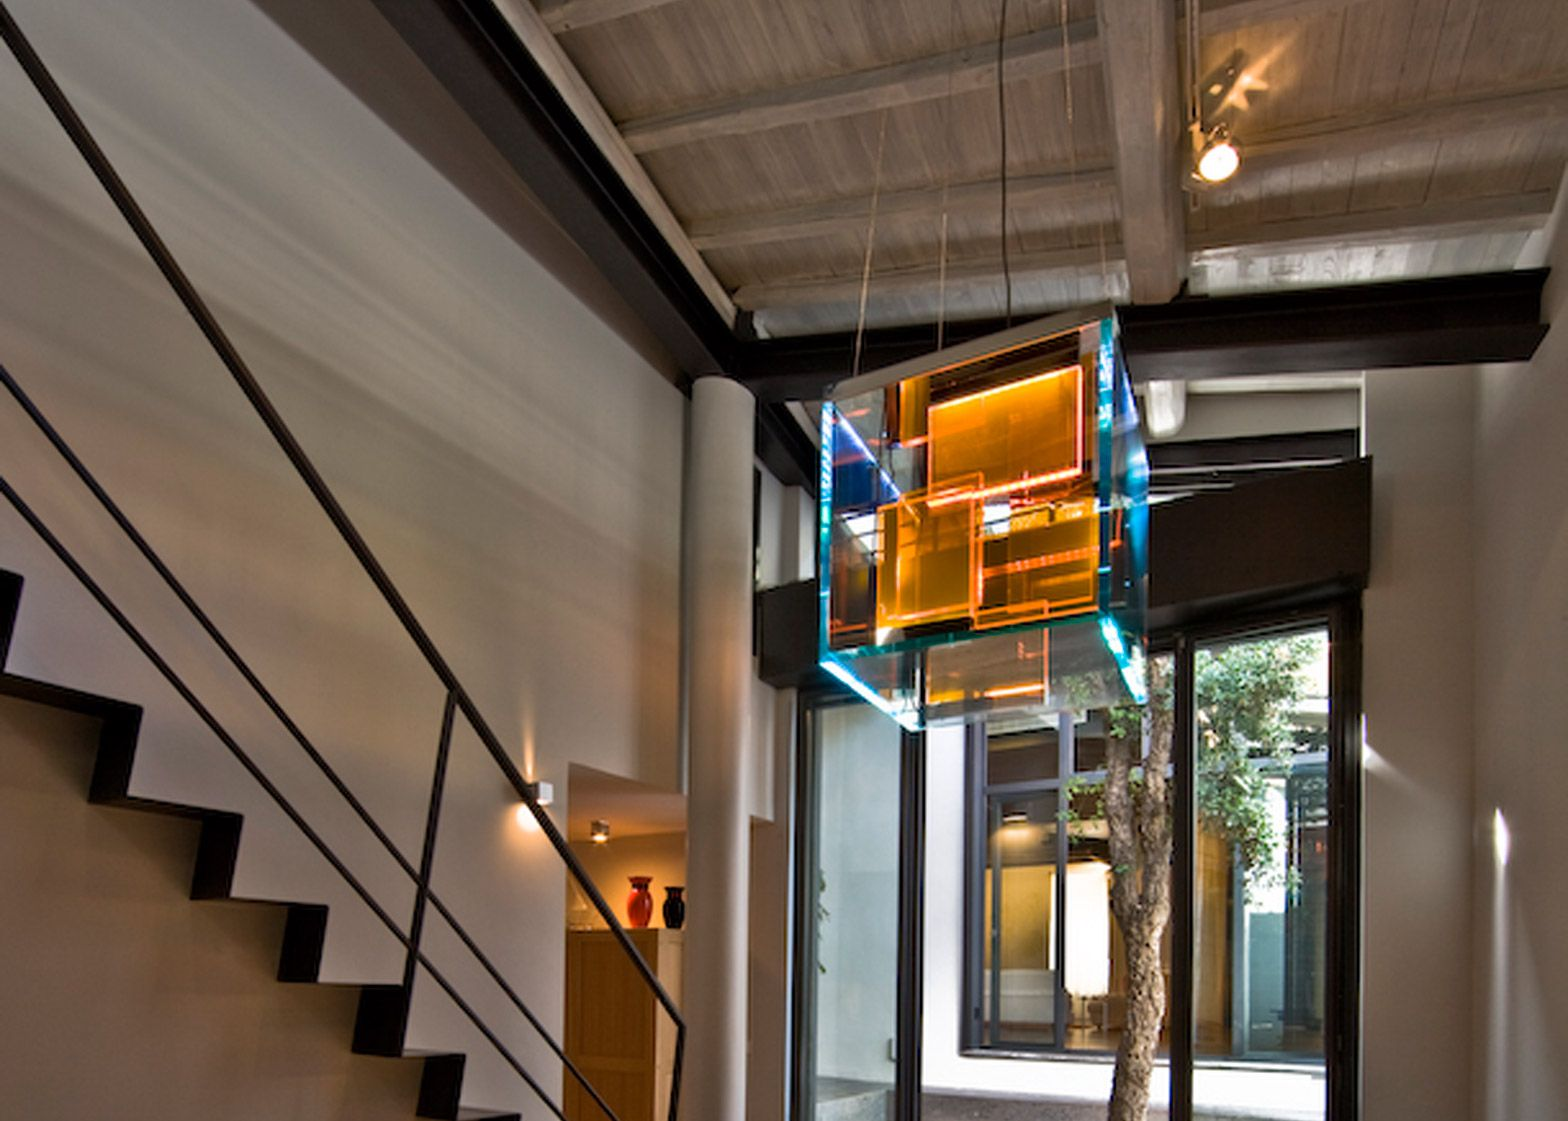 MdAA Architetti Associati transformed an old stable to create this home for a pair of fashion designers in Rome.